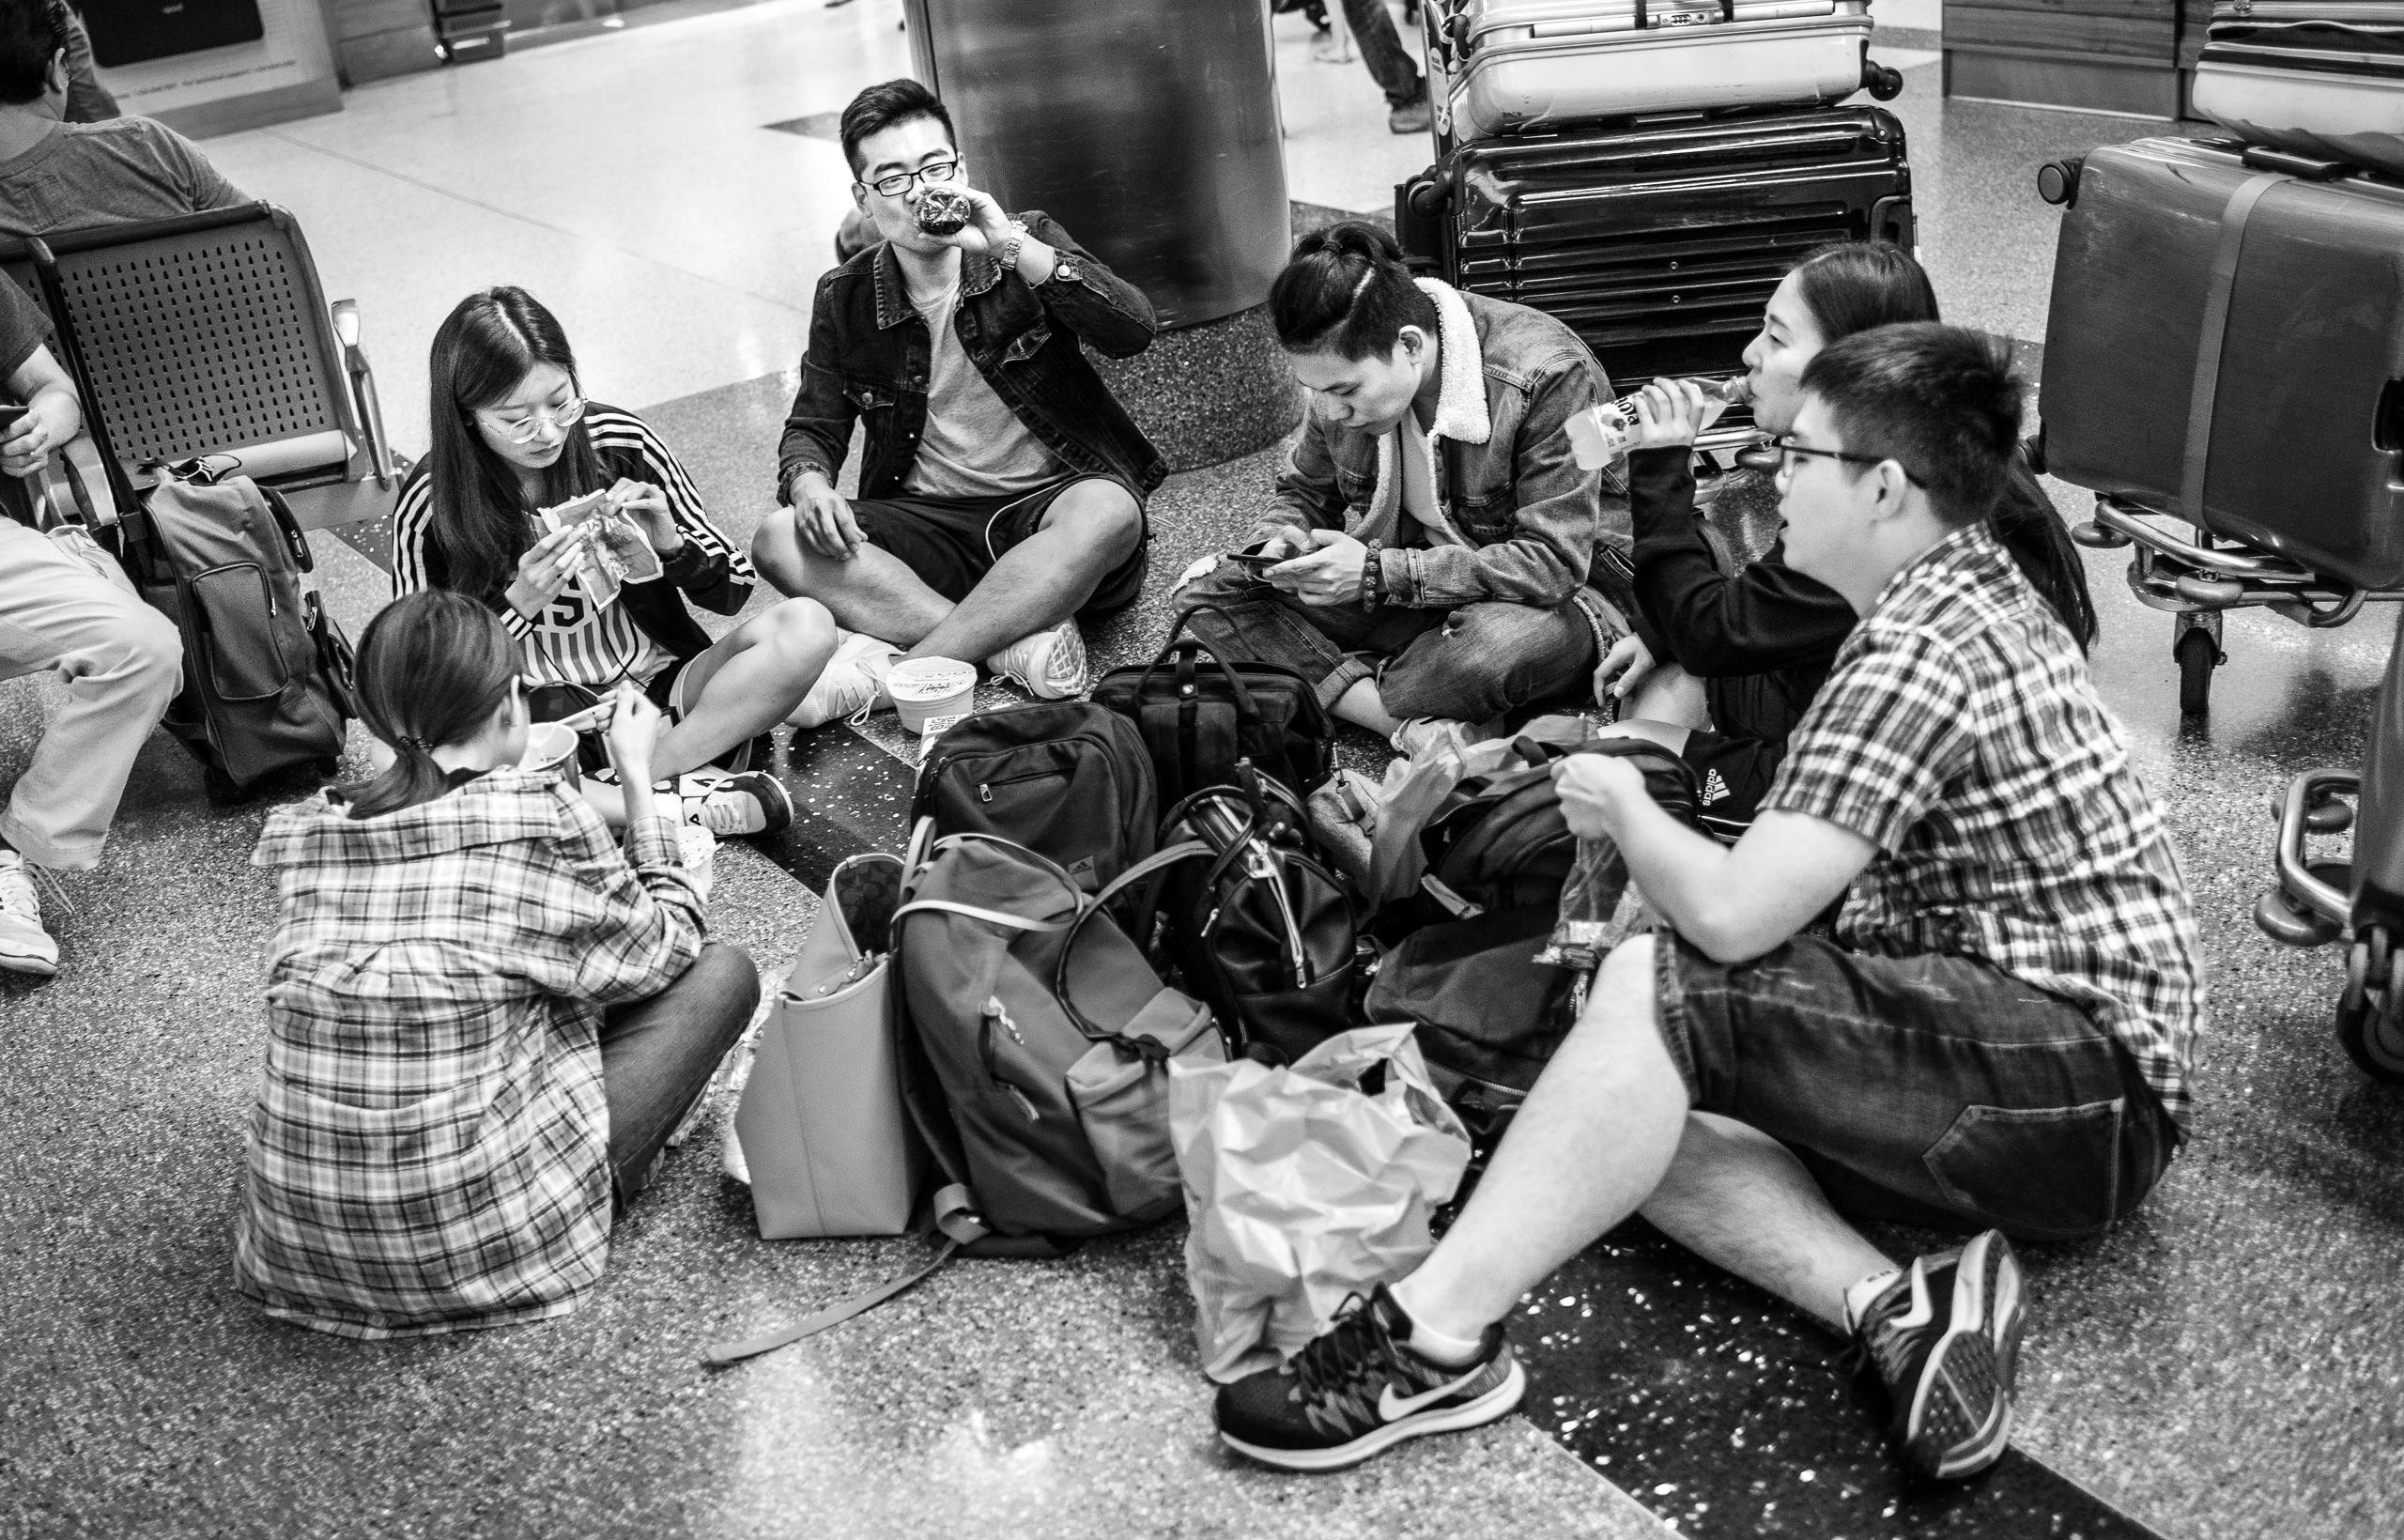 a group of travelers sits in a floor circle at the Tom Bradley International Terminal at LAX. They share food, drink, and conversation.